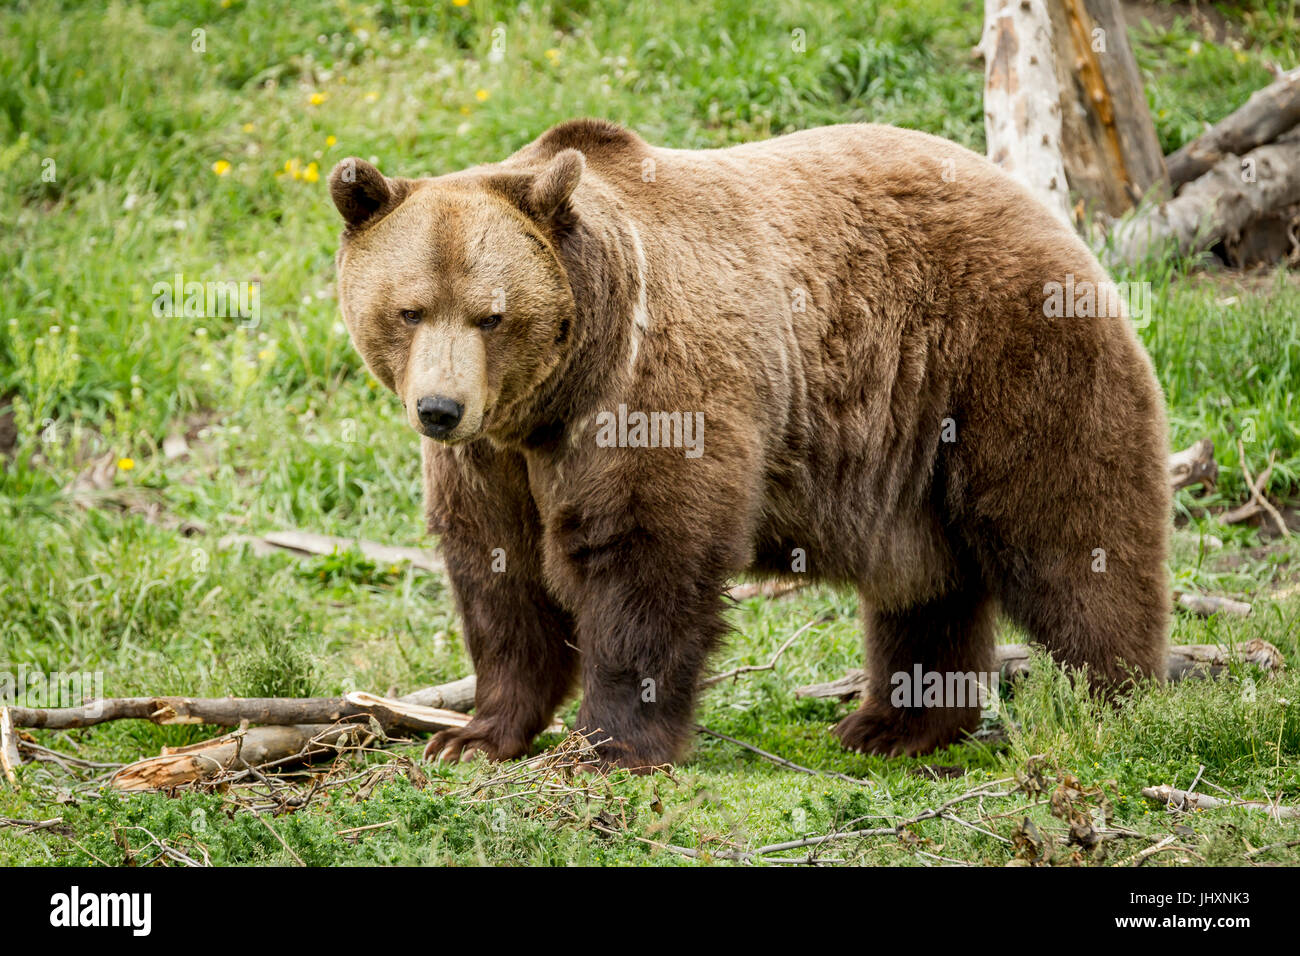 A sideview of a captive grizzly bear in Montana. - Stock Image